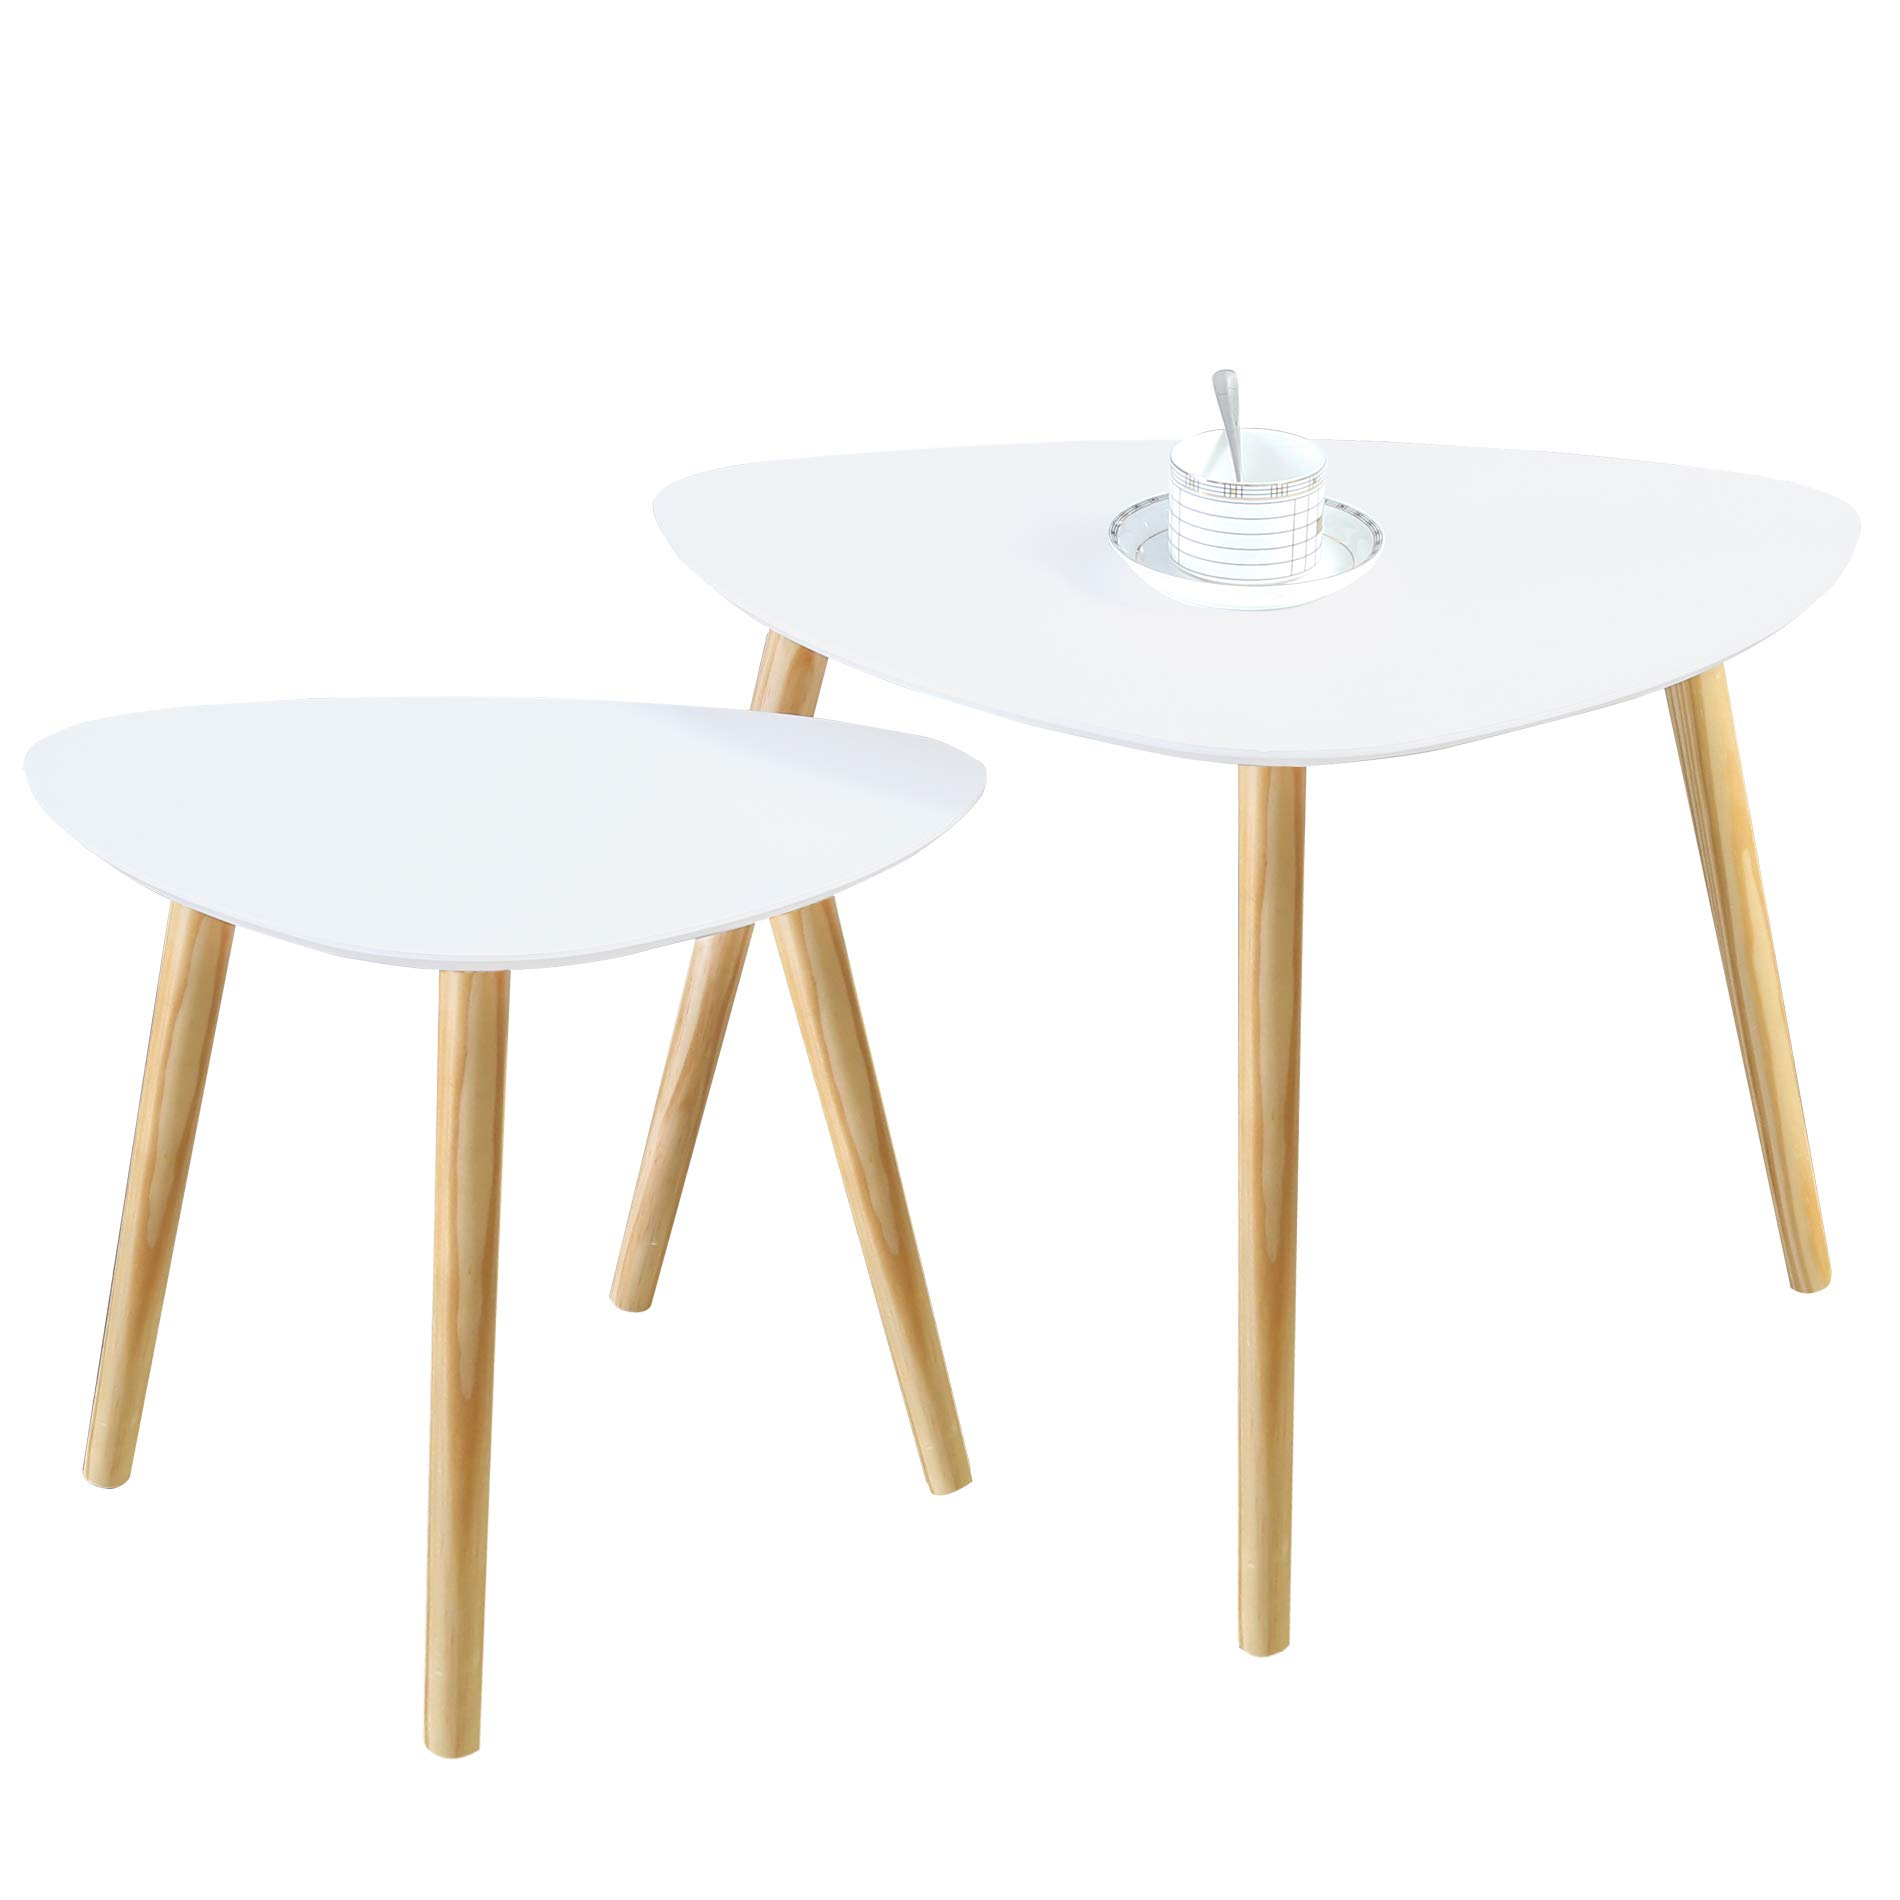 Homury Wood Nesting Coffee End Tables Set of 2 Side Table for Home and Office,White (Triangle)